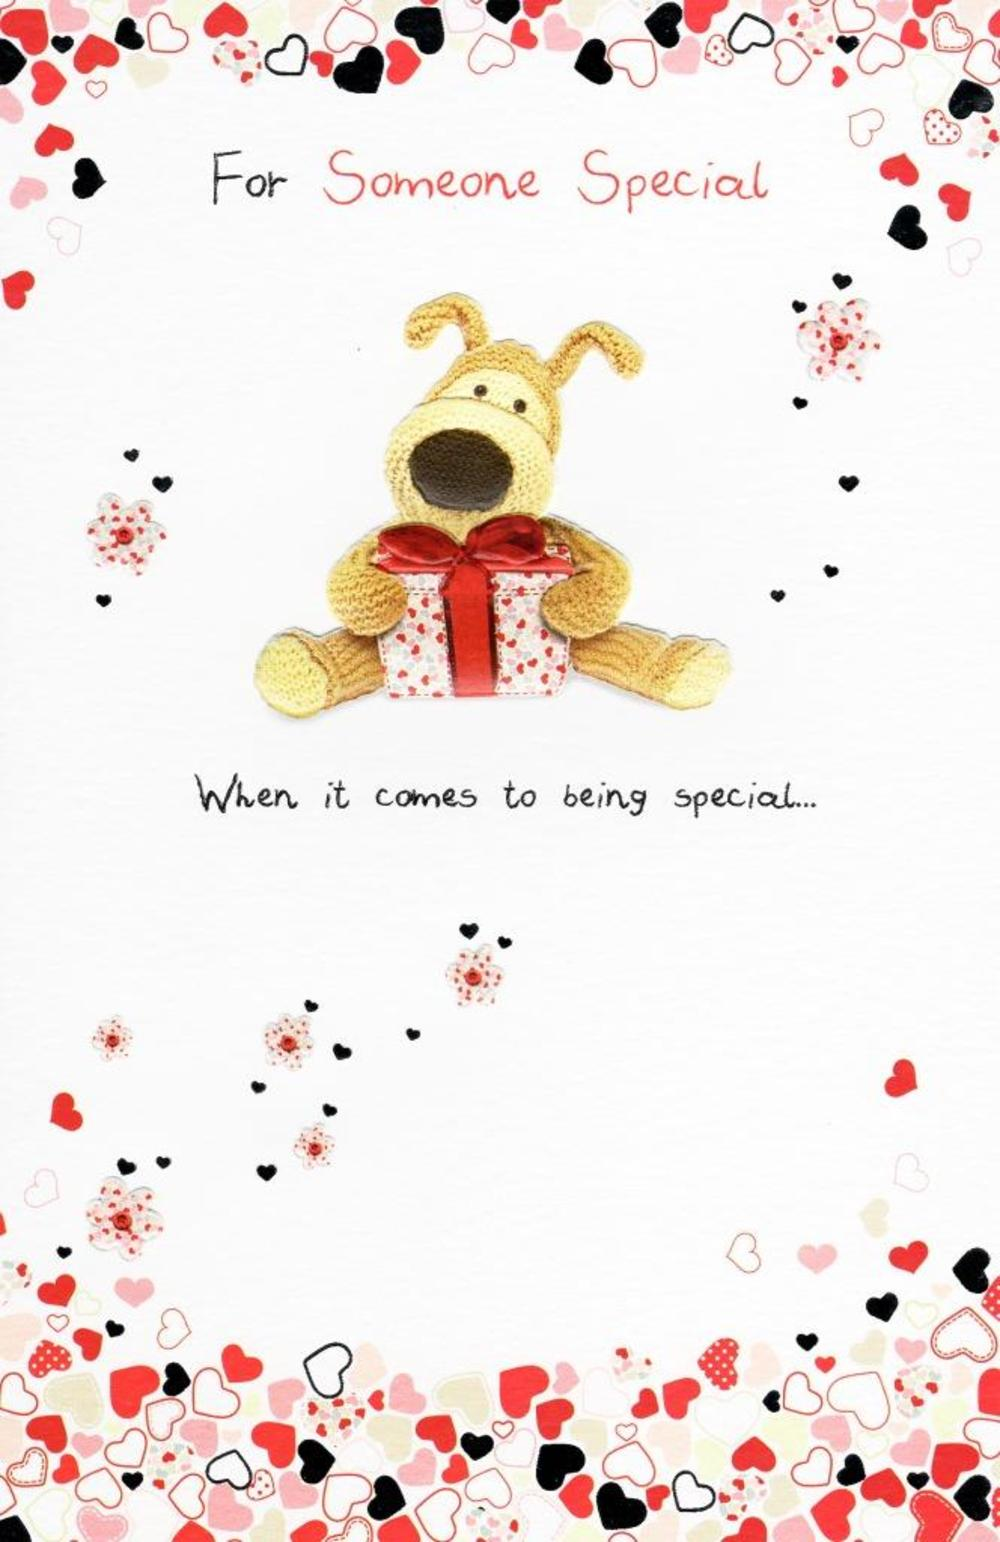 Boofle Someone Special Birthday Greeting Card   Cards ...